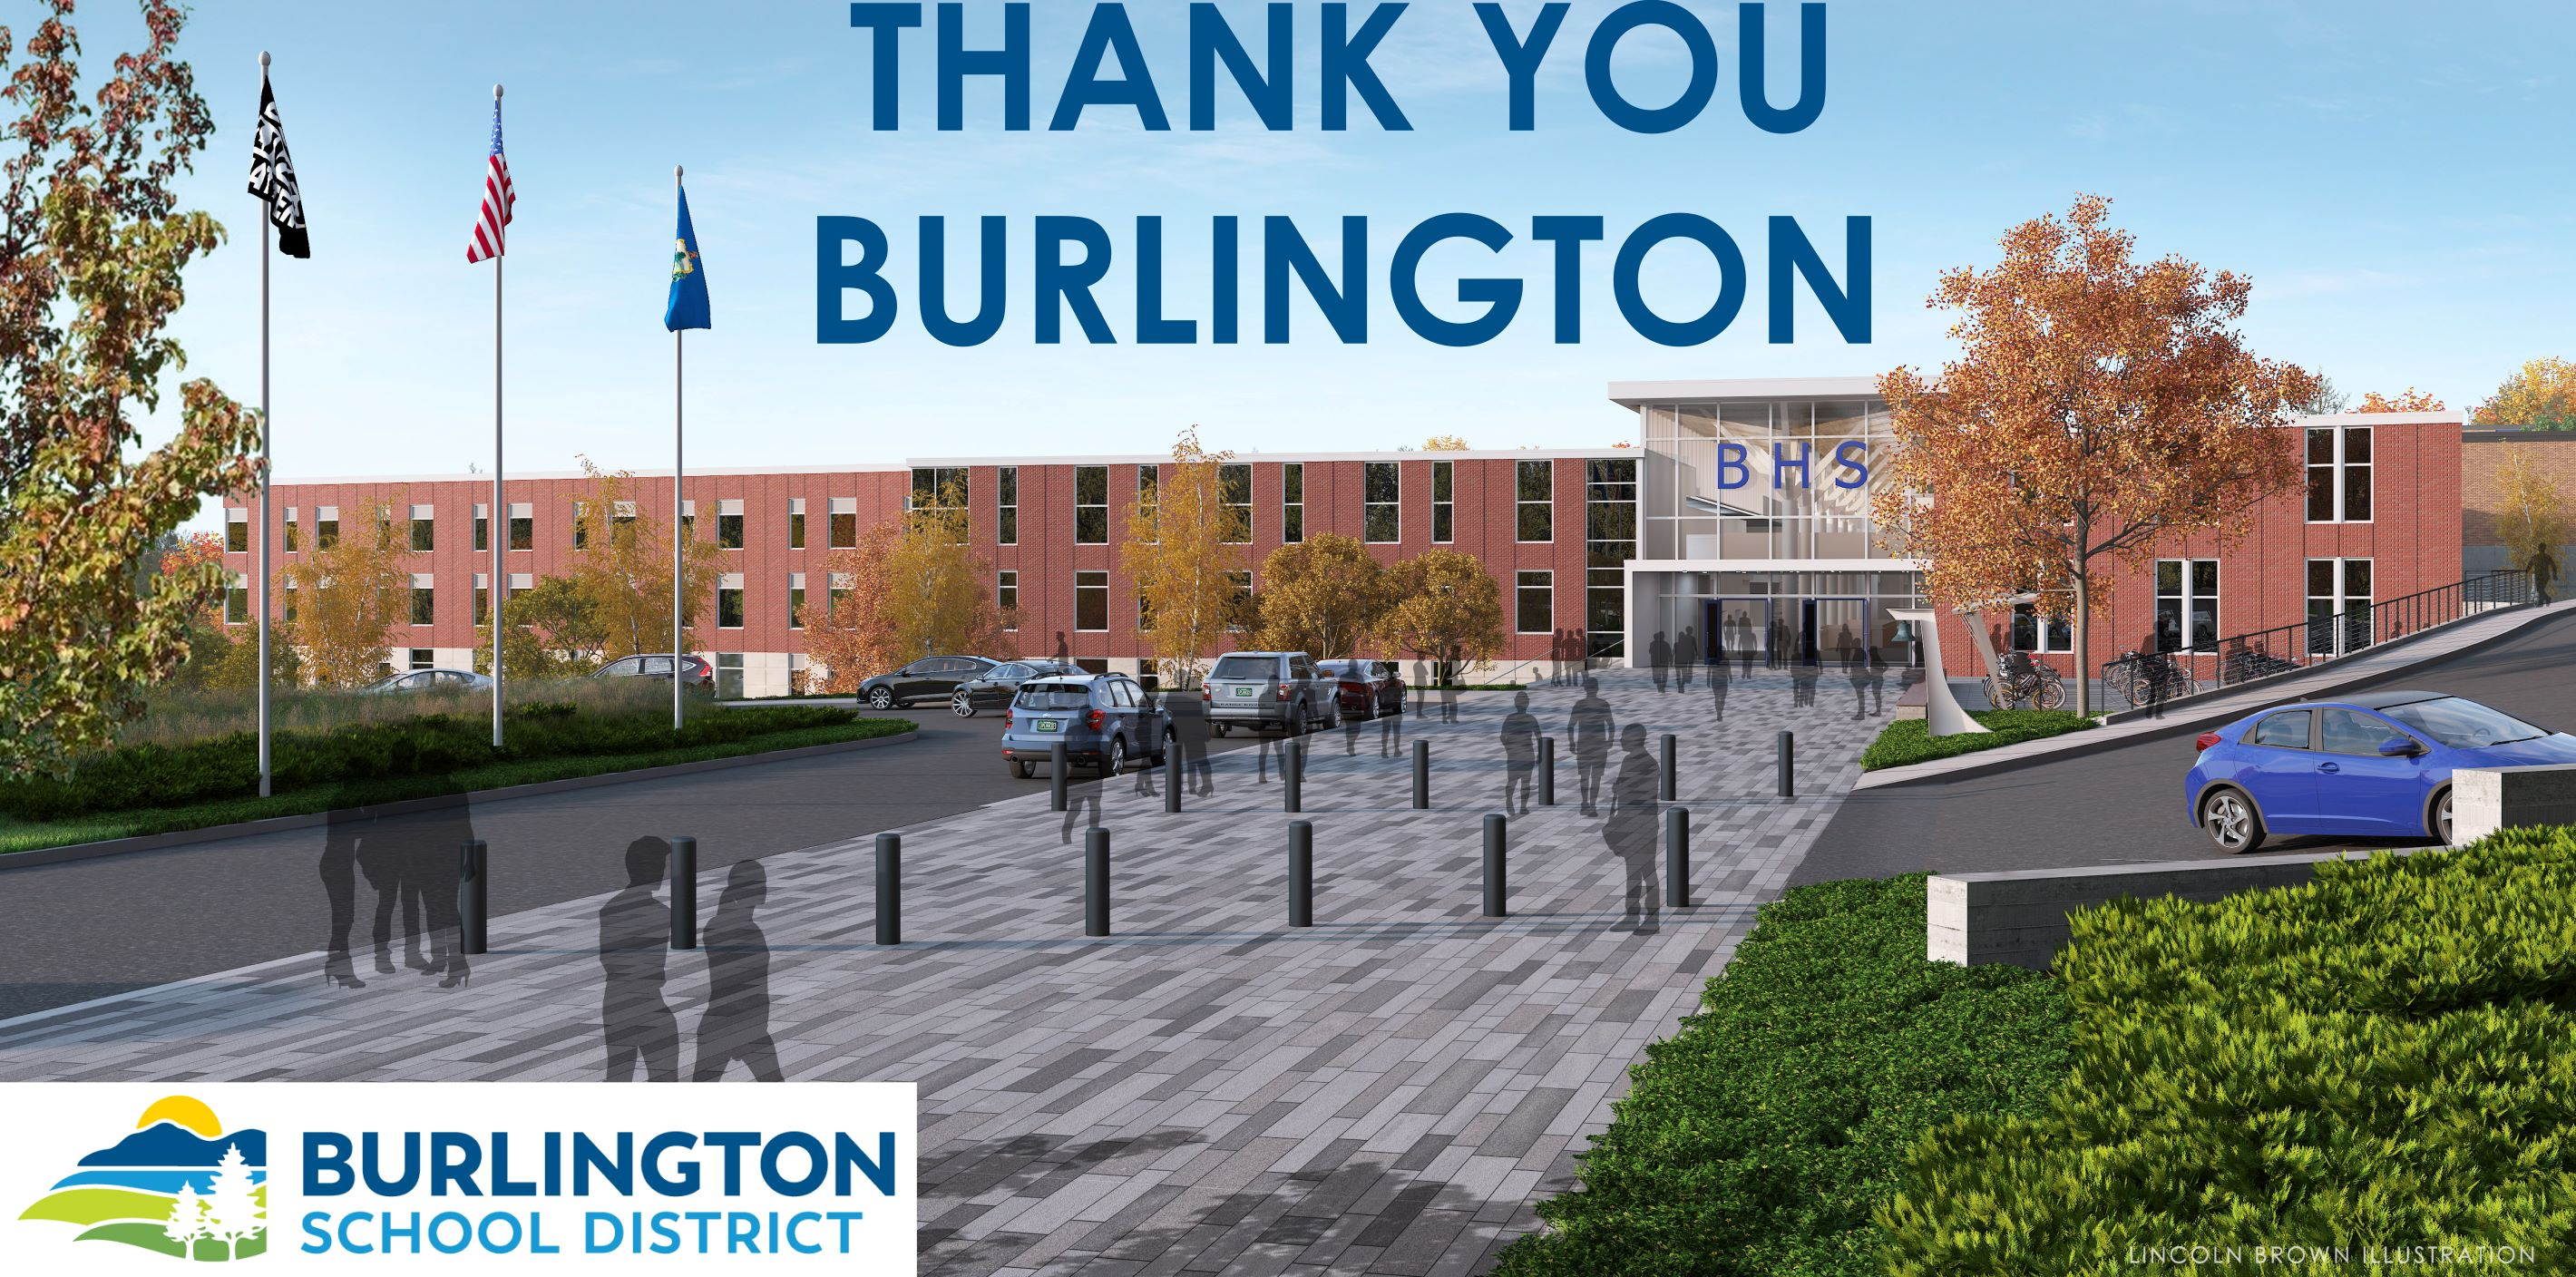 Thank you Burlington voters!